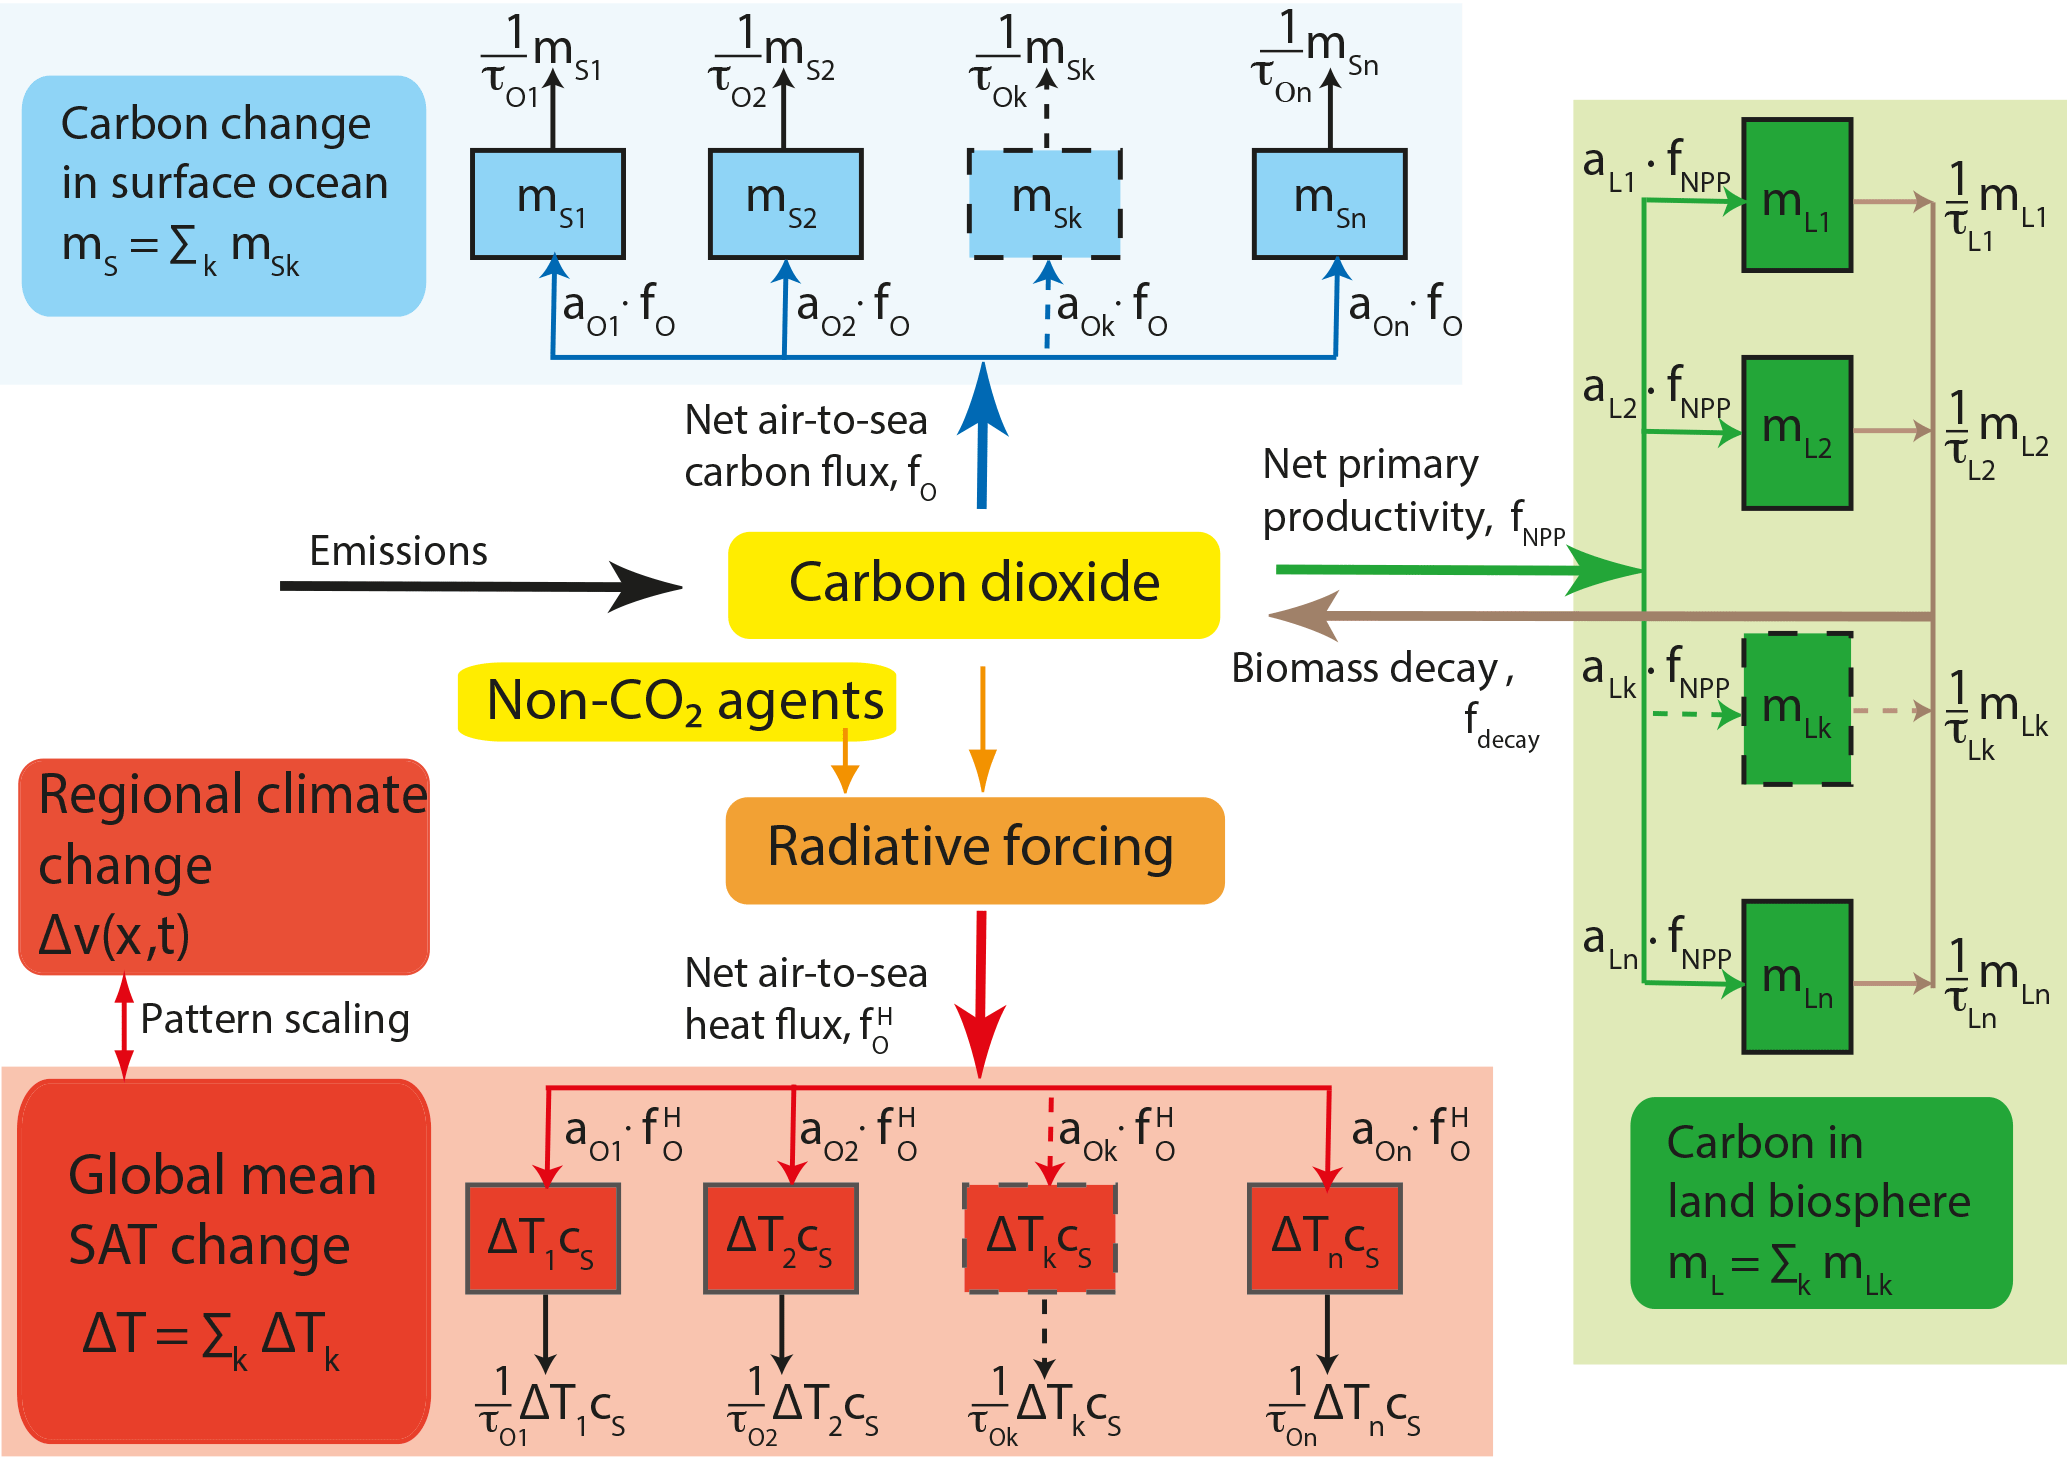 GMD - The Bern Simple Climate Model (BernSCM) v1 0: an